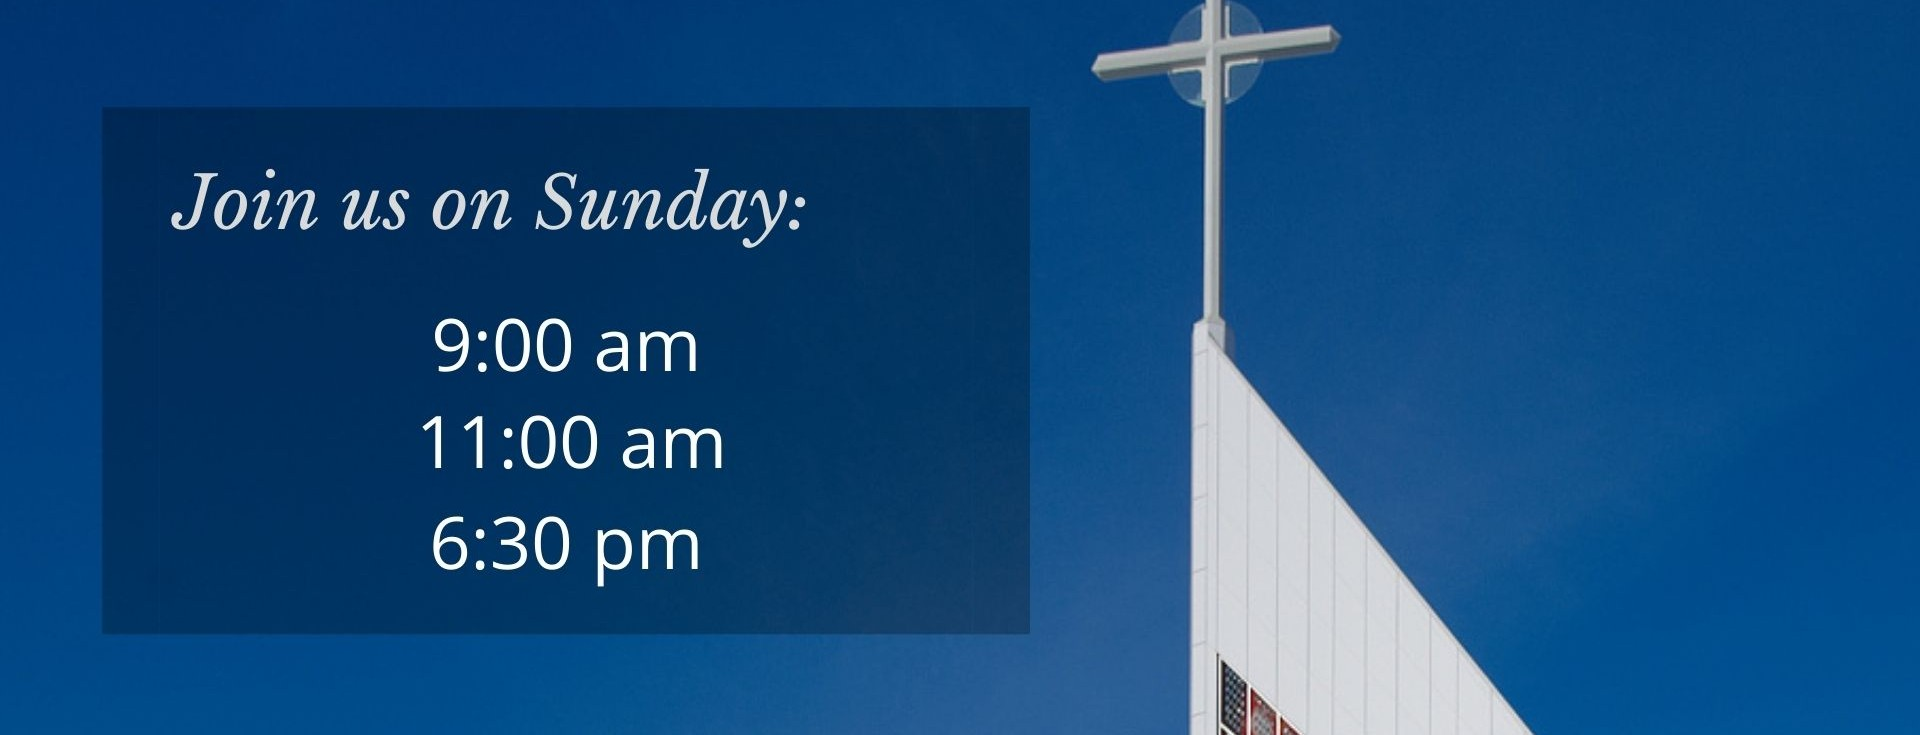 Join Us Sunday (2021)